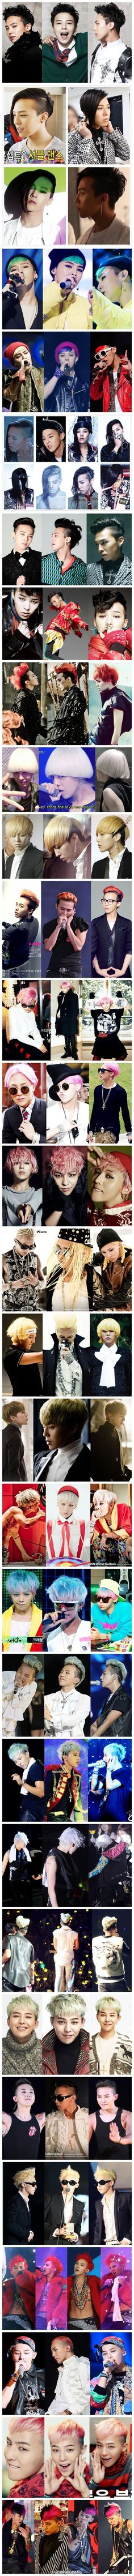 the many hairstyles of G-Dragon that are all awesome! Only GD can pull some of these styles off XD